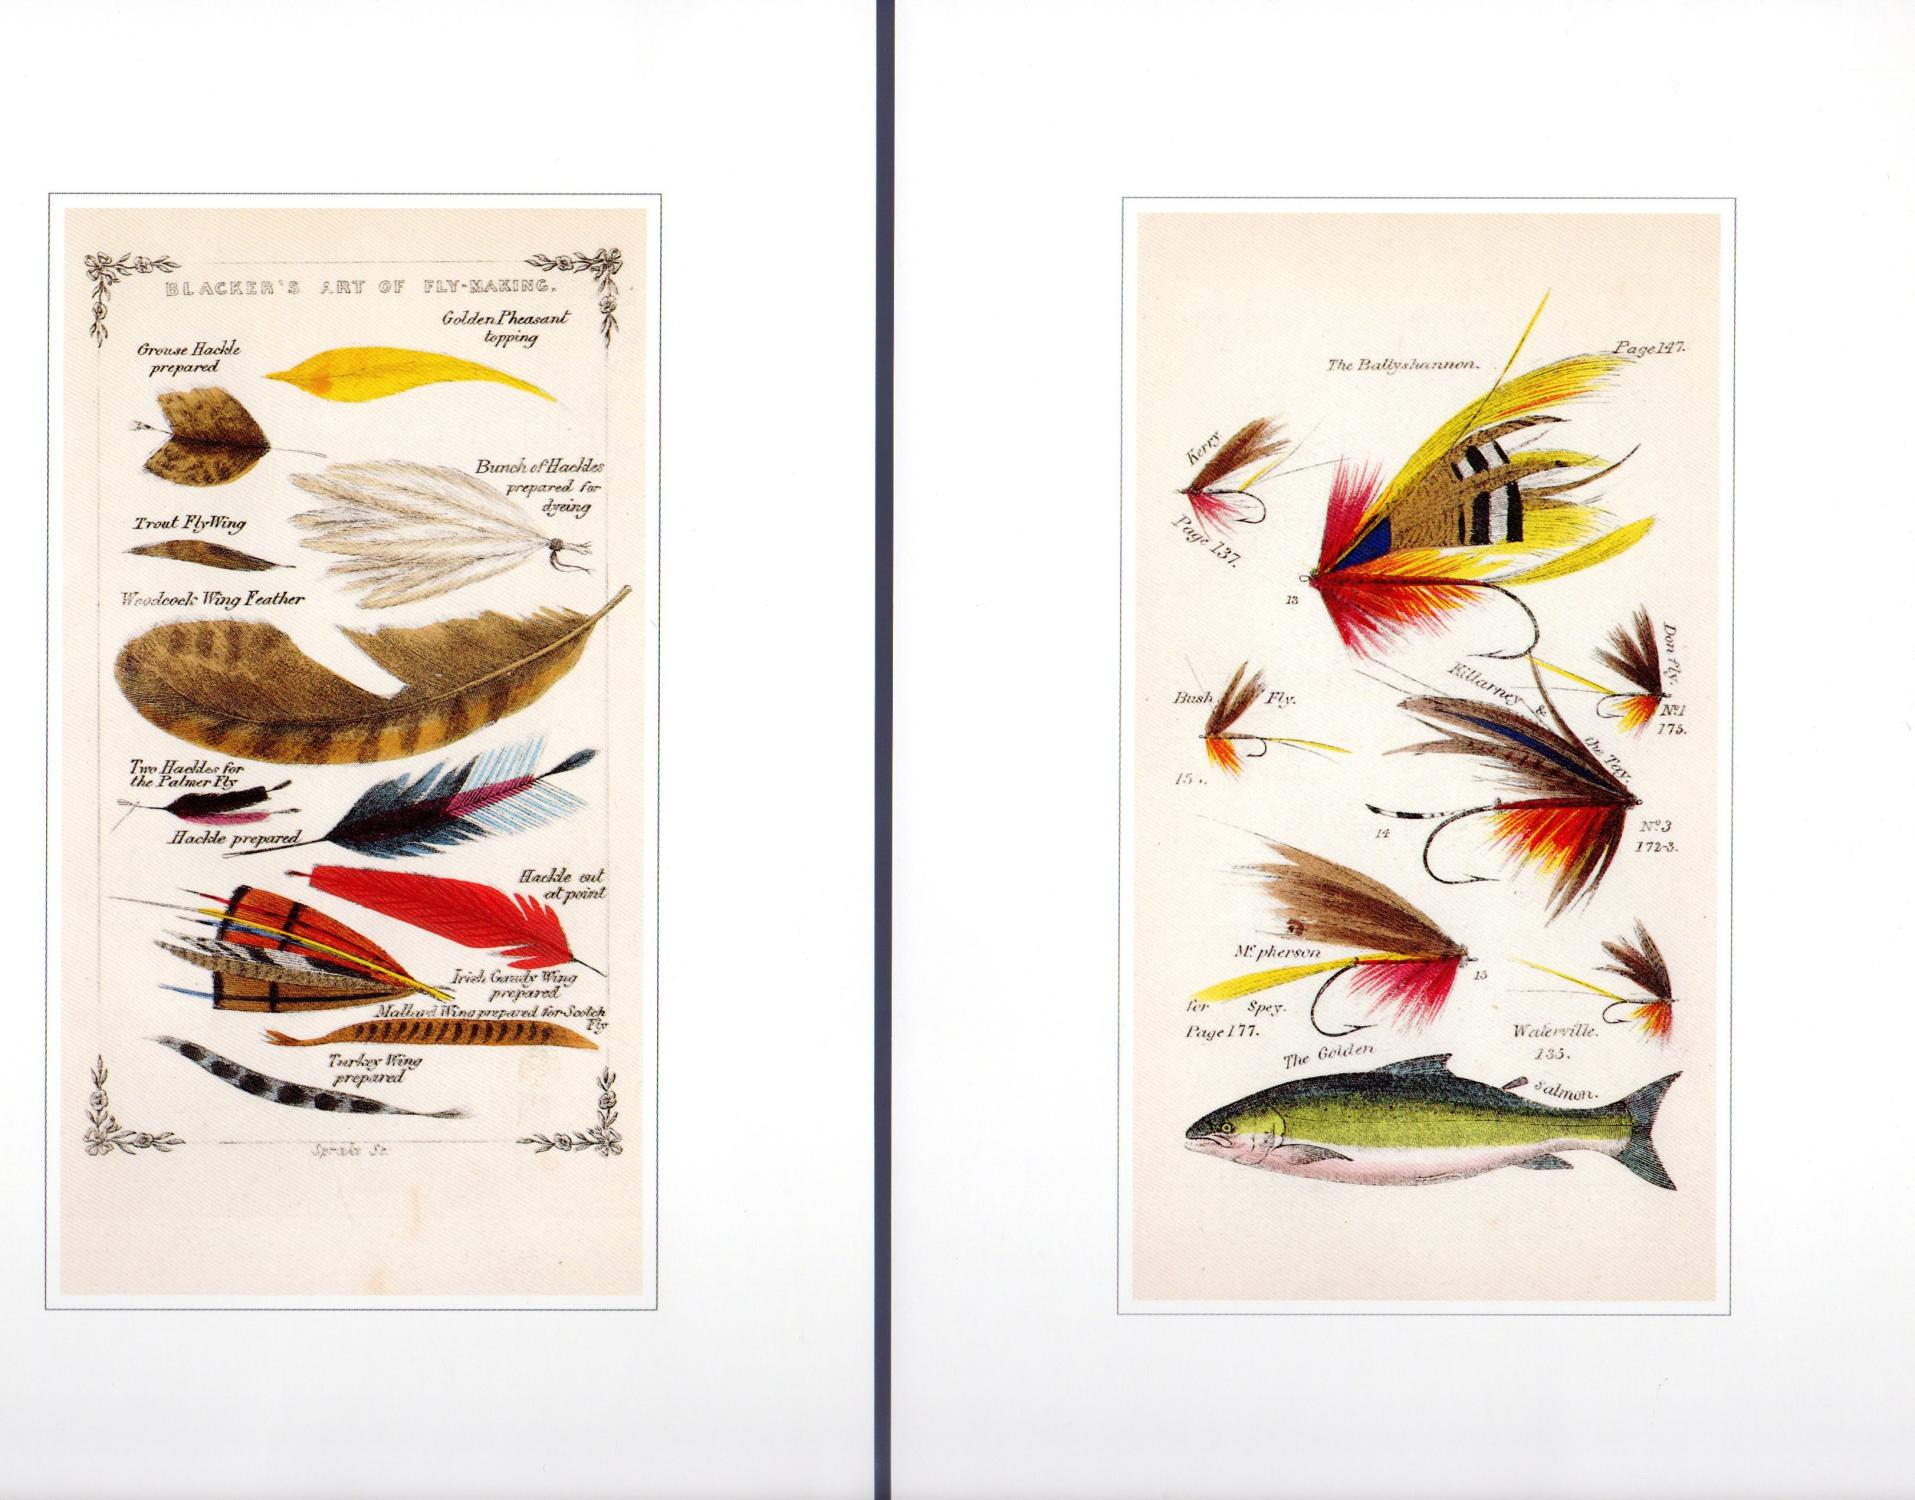 The Portfolio of Eighteen Color Plates from